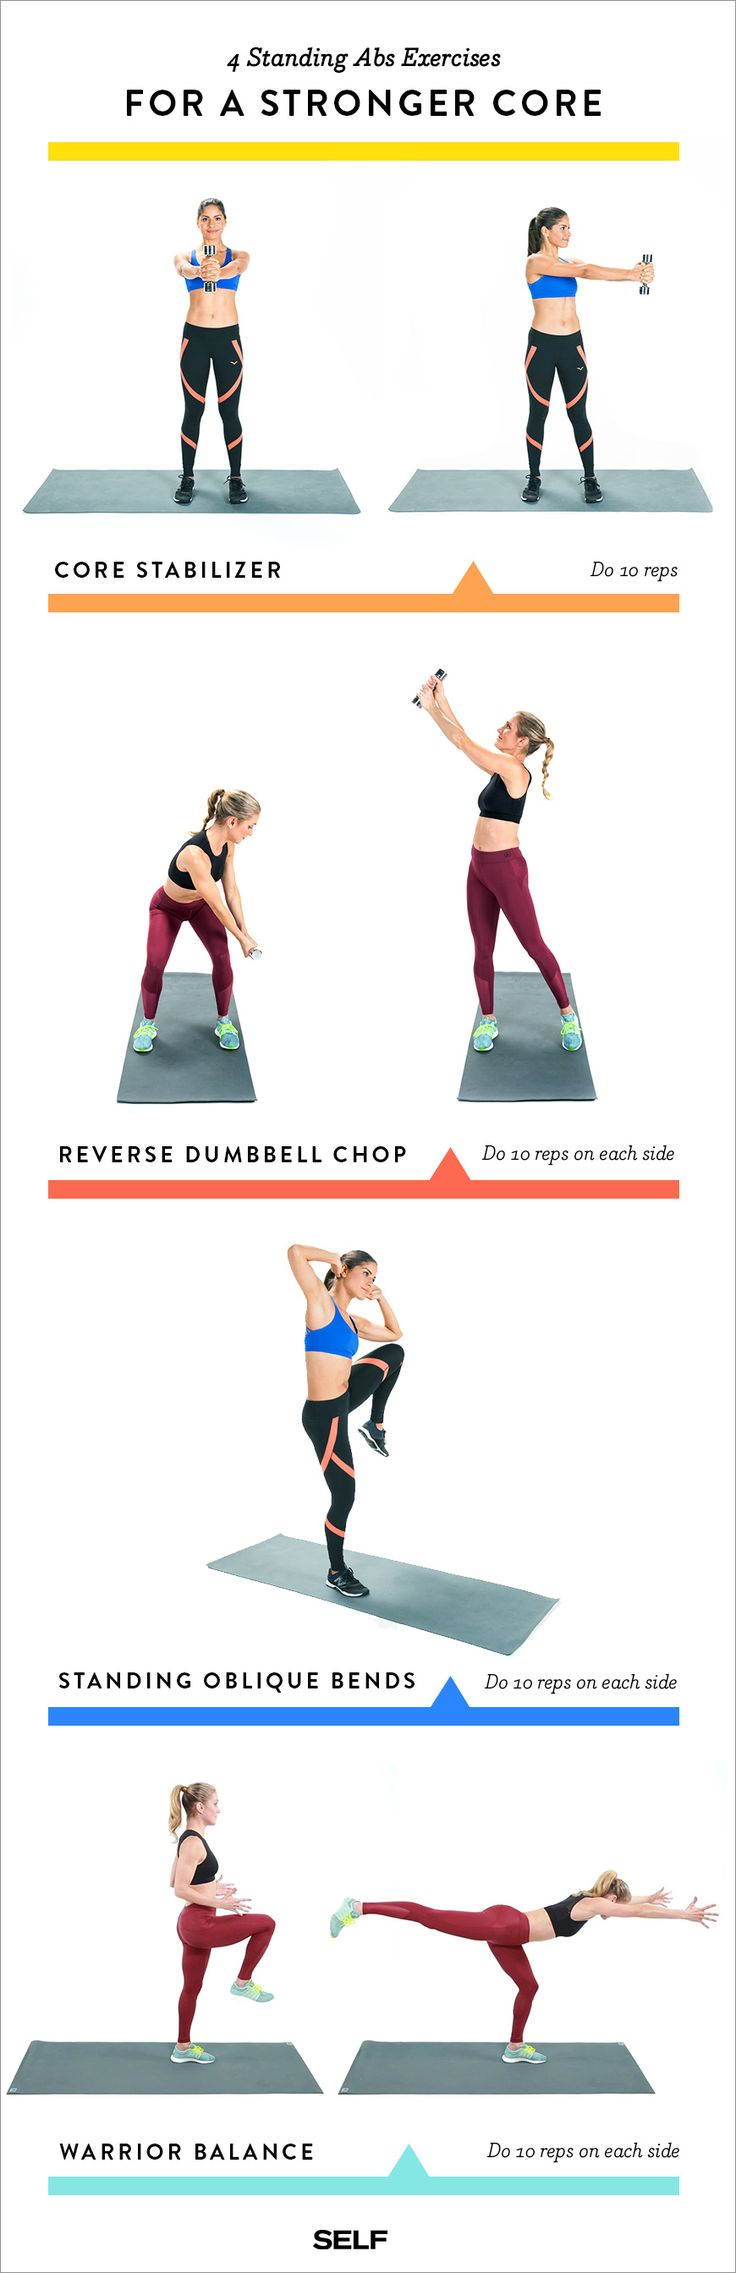 While you shouldn't neglect your floor abs workout entirely, standing exercises are a great way to mix up your regular routine. So give the four-move circuit below a try (be sure to save the Pin below for easy reference). You'll need one dumbbell—start with a weight that's five to eight pounds, and go heavier when you can.